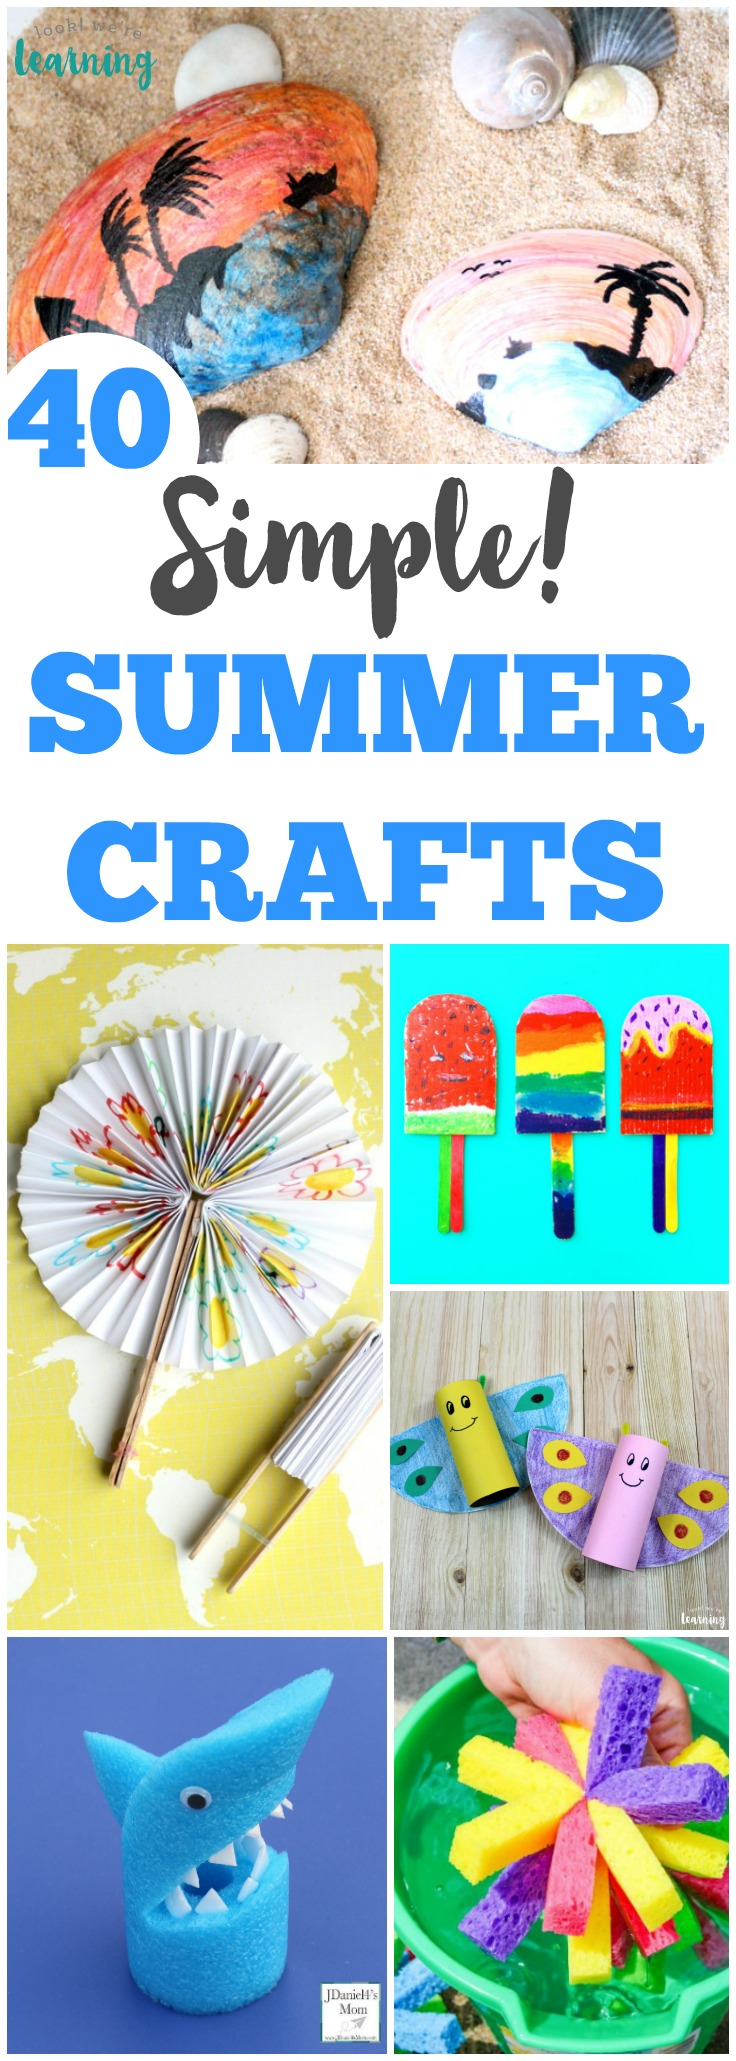 Share some easy crafting fun with the kids this summer with this list of simple summer crafts!